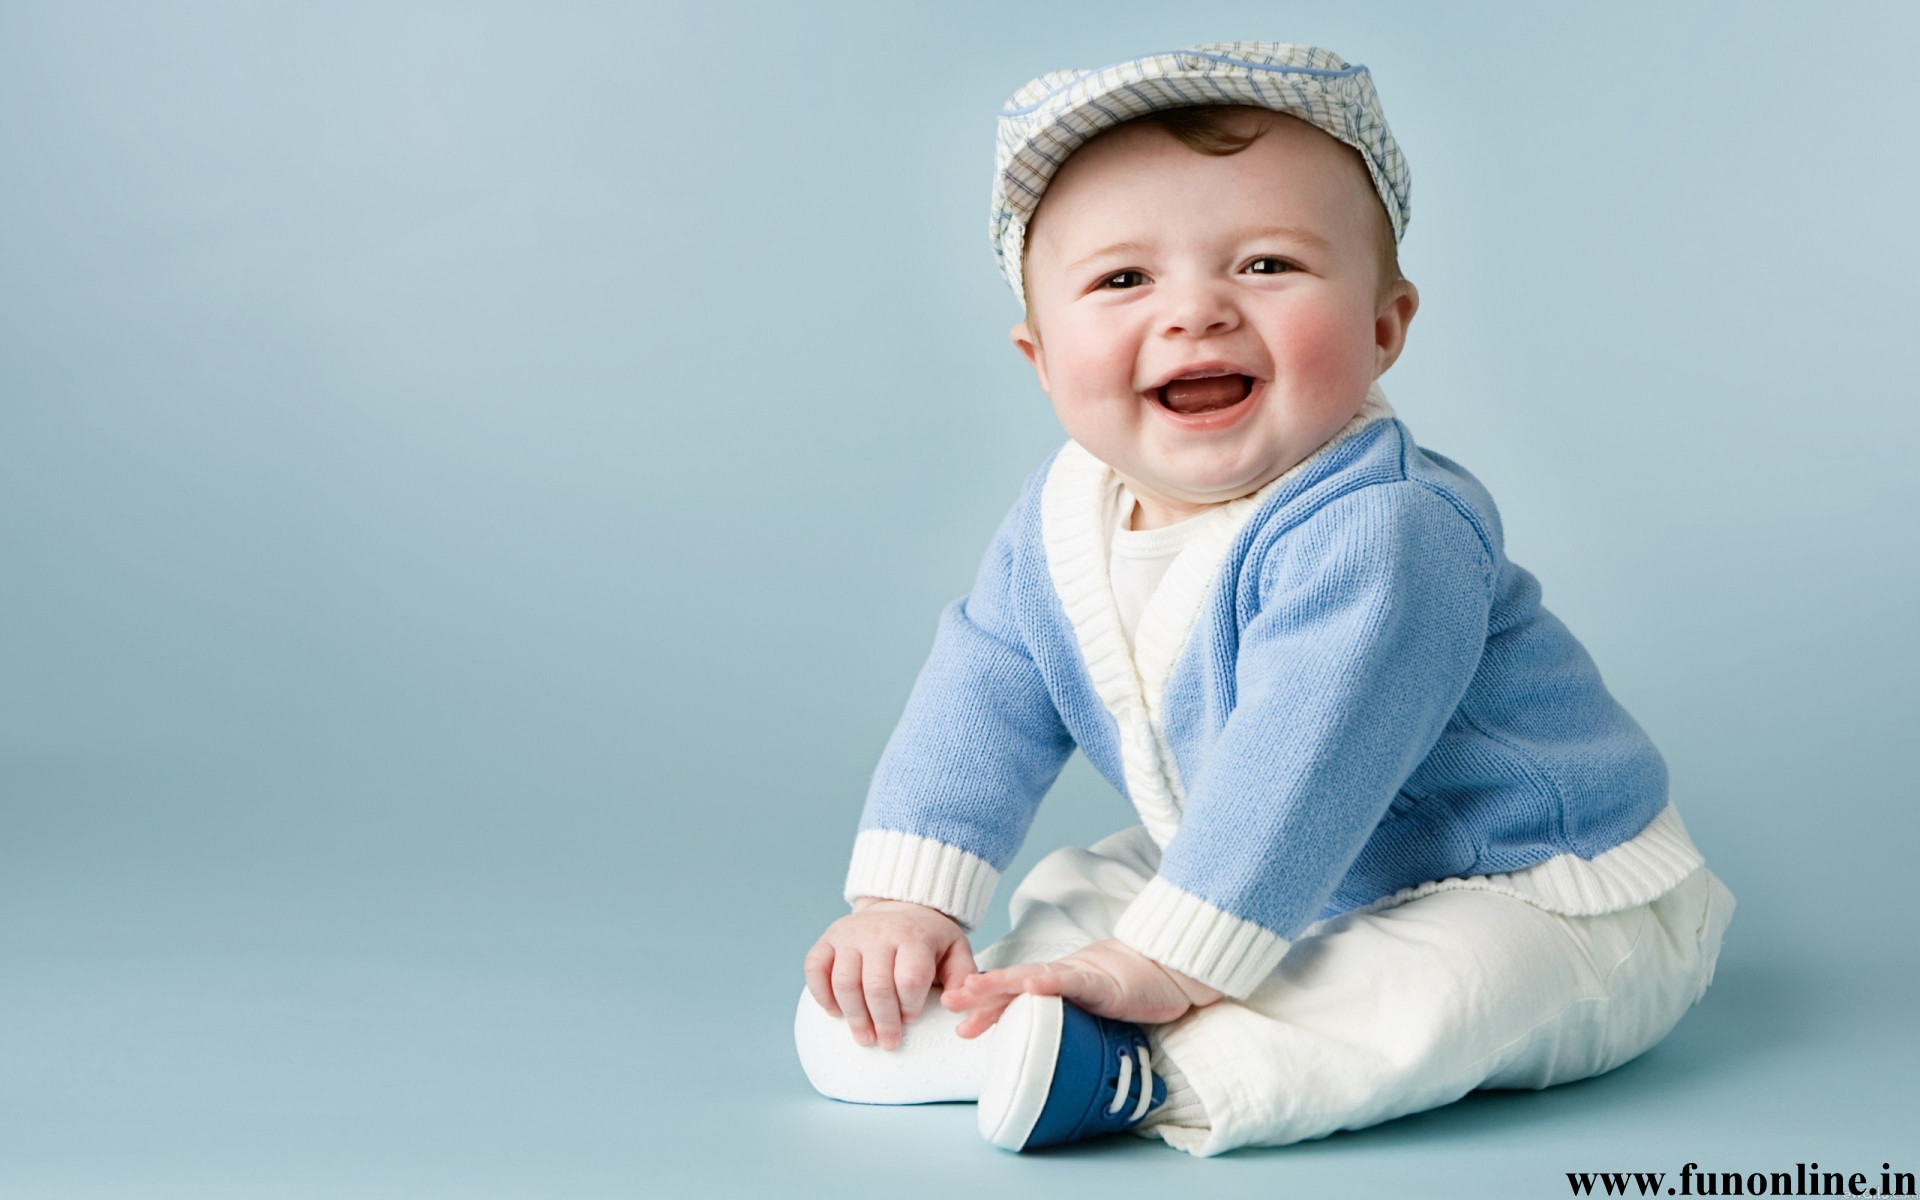 Baby Wallpapers Download Pretty and Smiling Babies HD Wallpaper 1920x1200